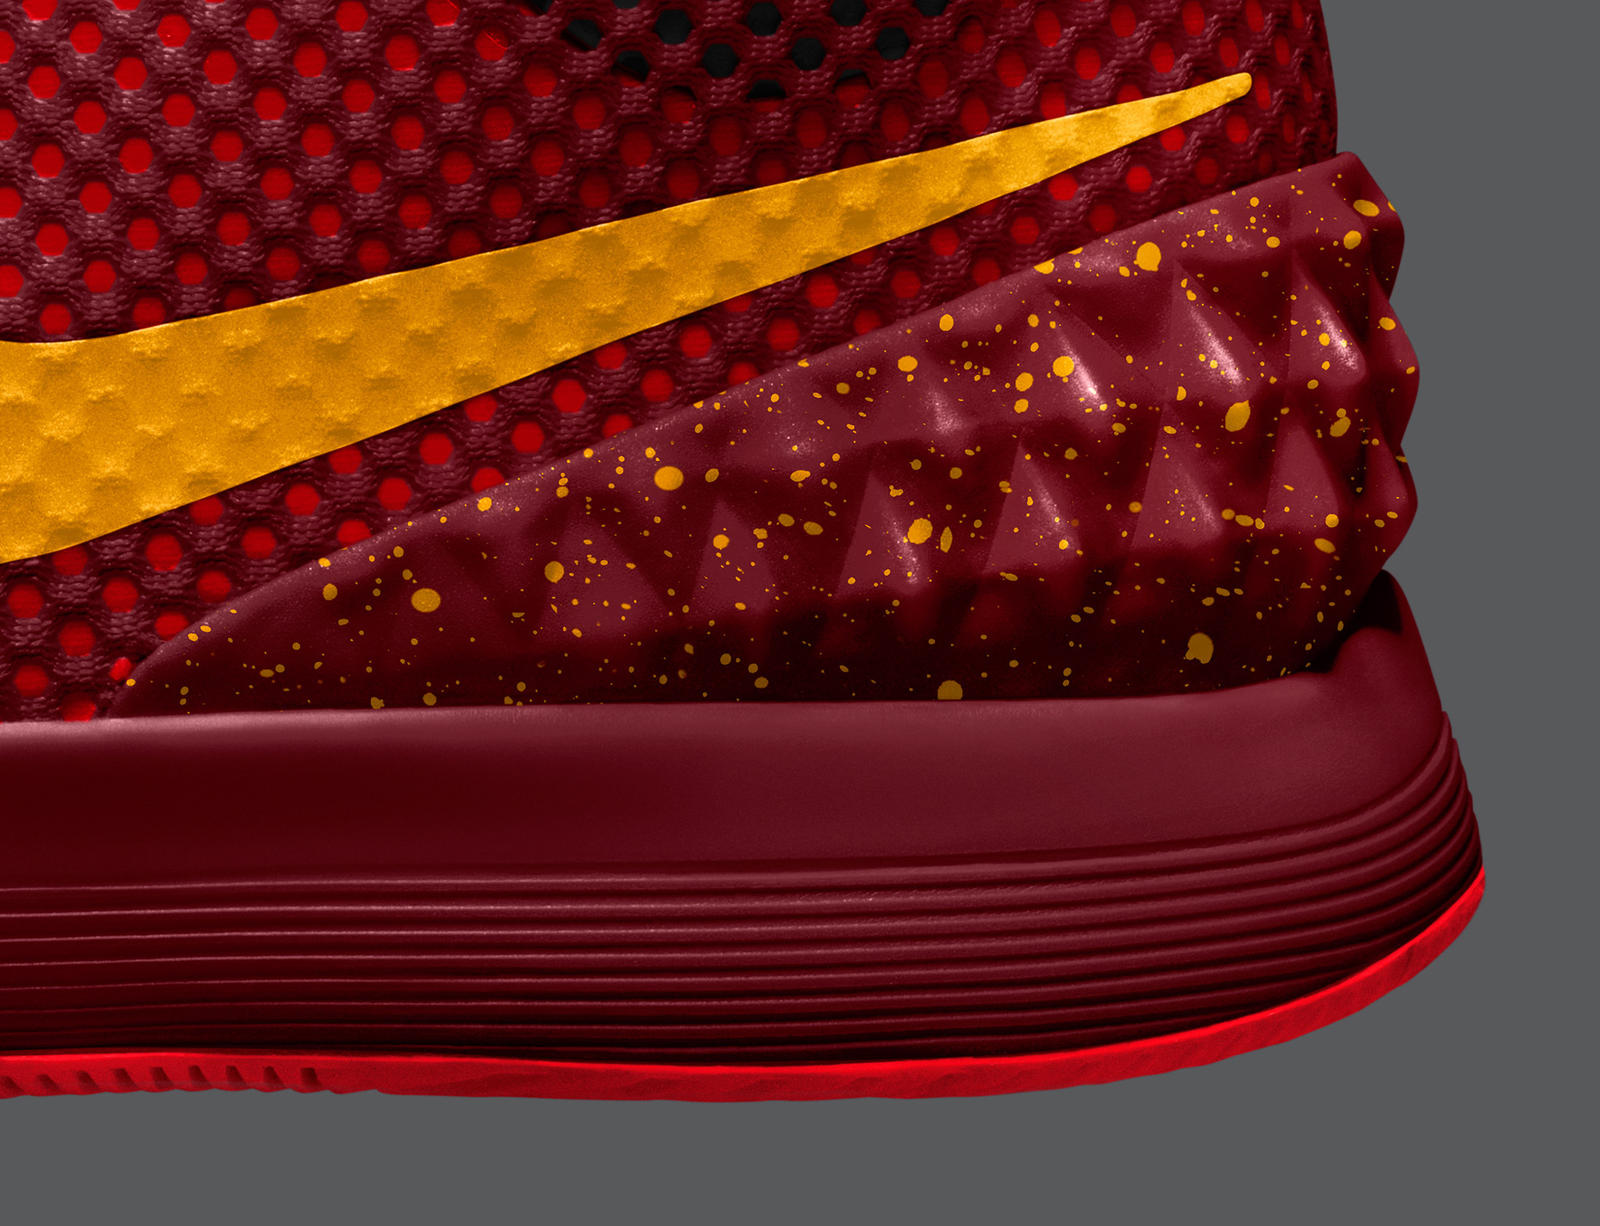 74e5bd5d2888 Sp15 NikeiD Kyrie 1 2048x1570 Detail 1. KYRIE 1 NIKEiD speckle graphic on  the heel. Irving will ...